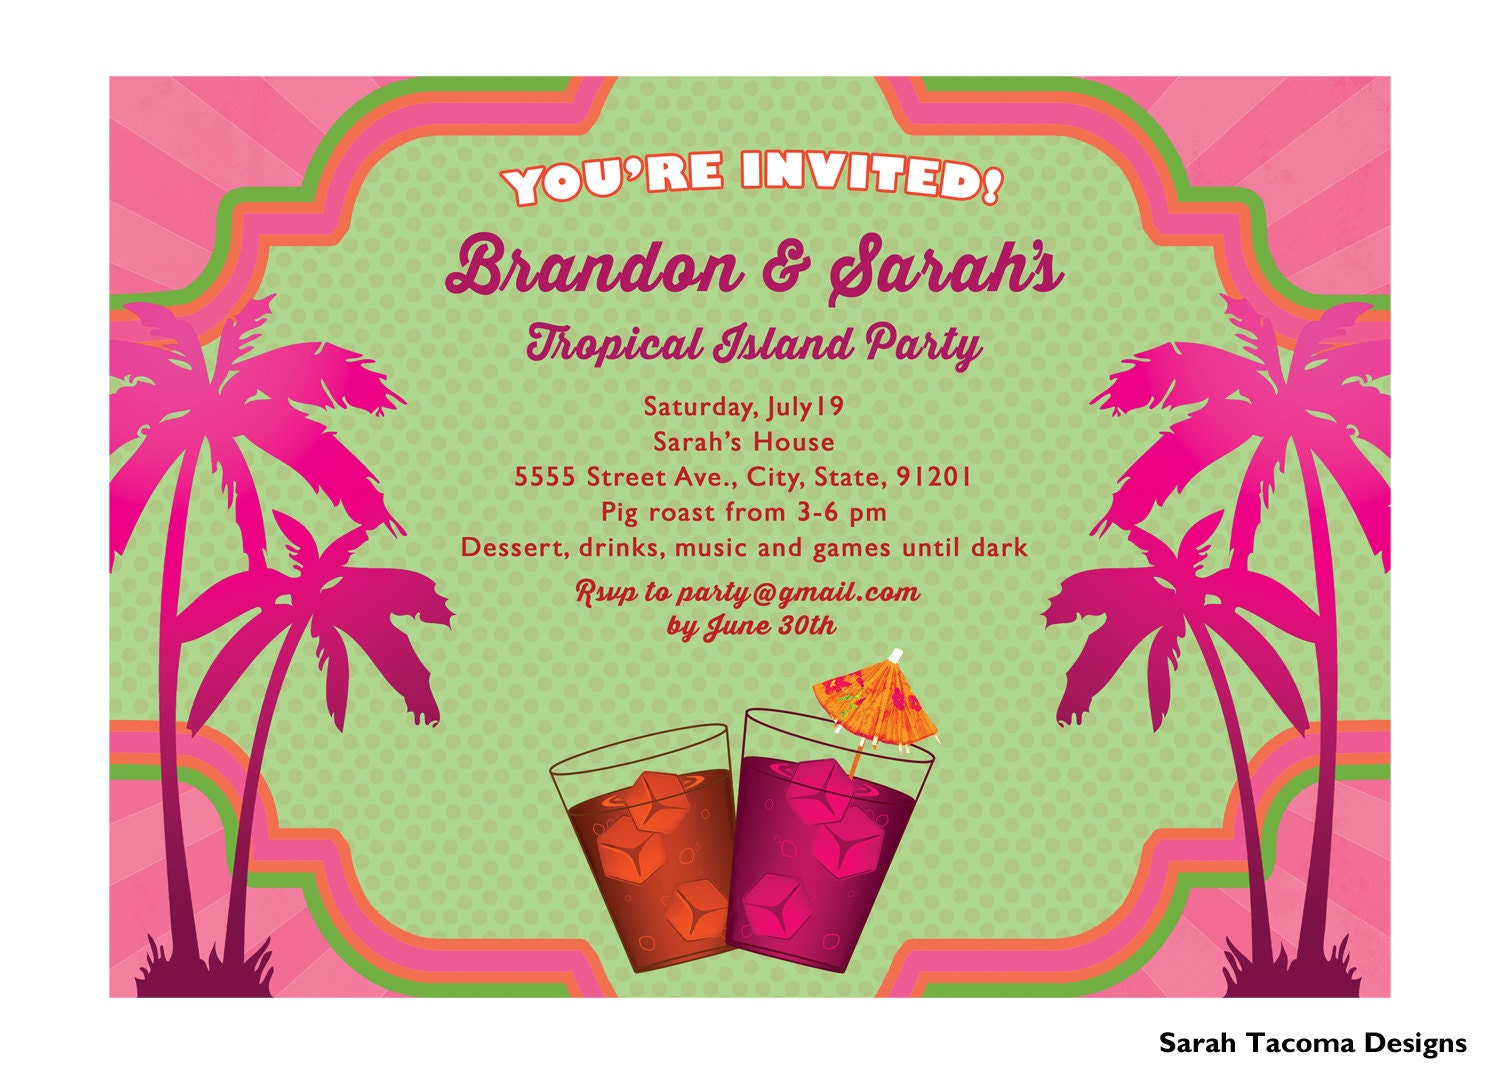 Tropical Island Paradise Party Invitation. Announcement.